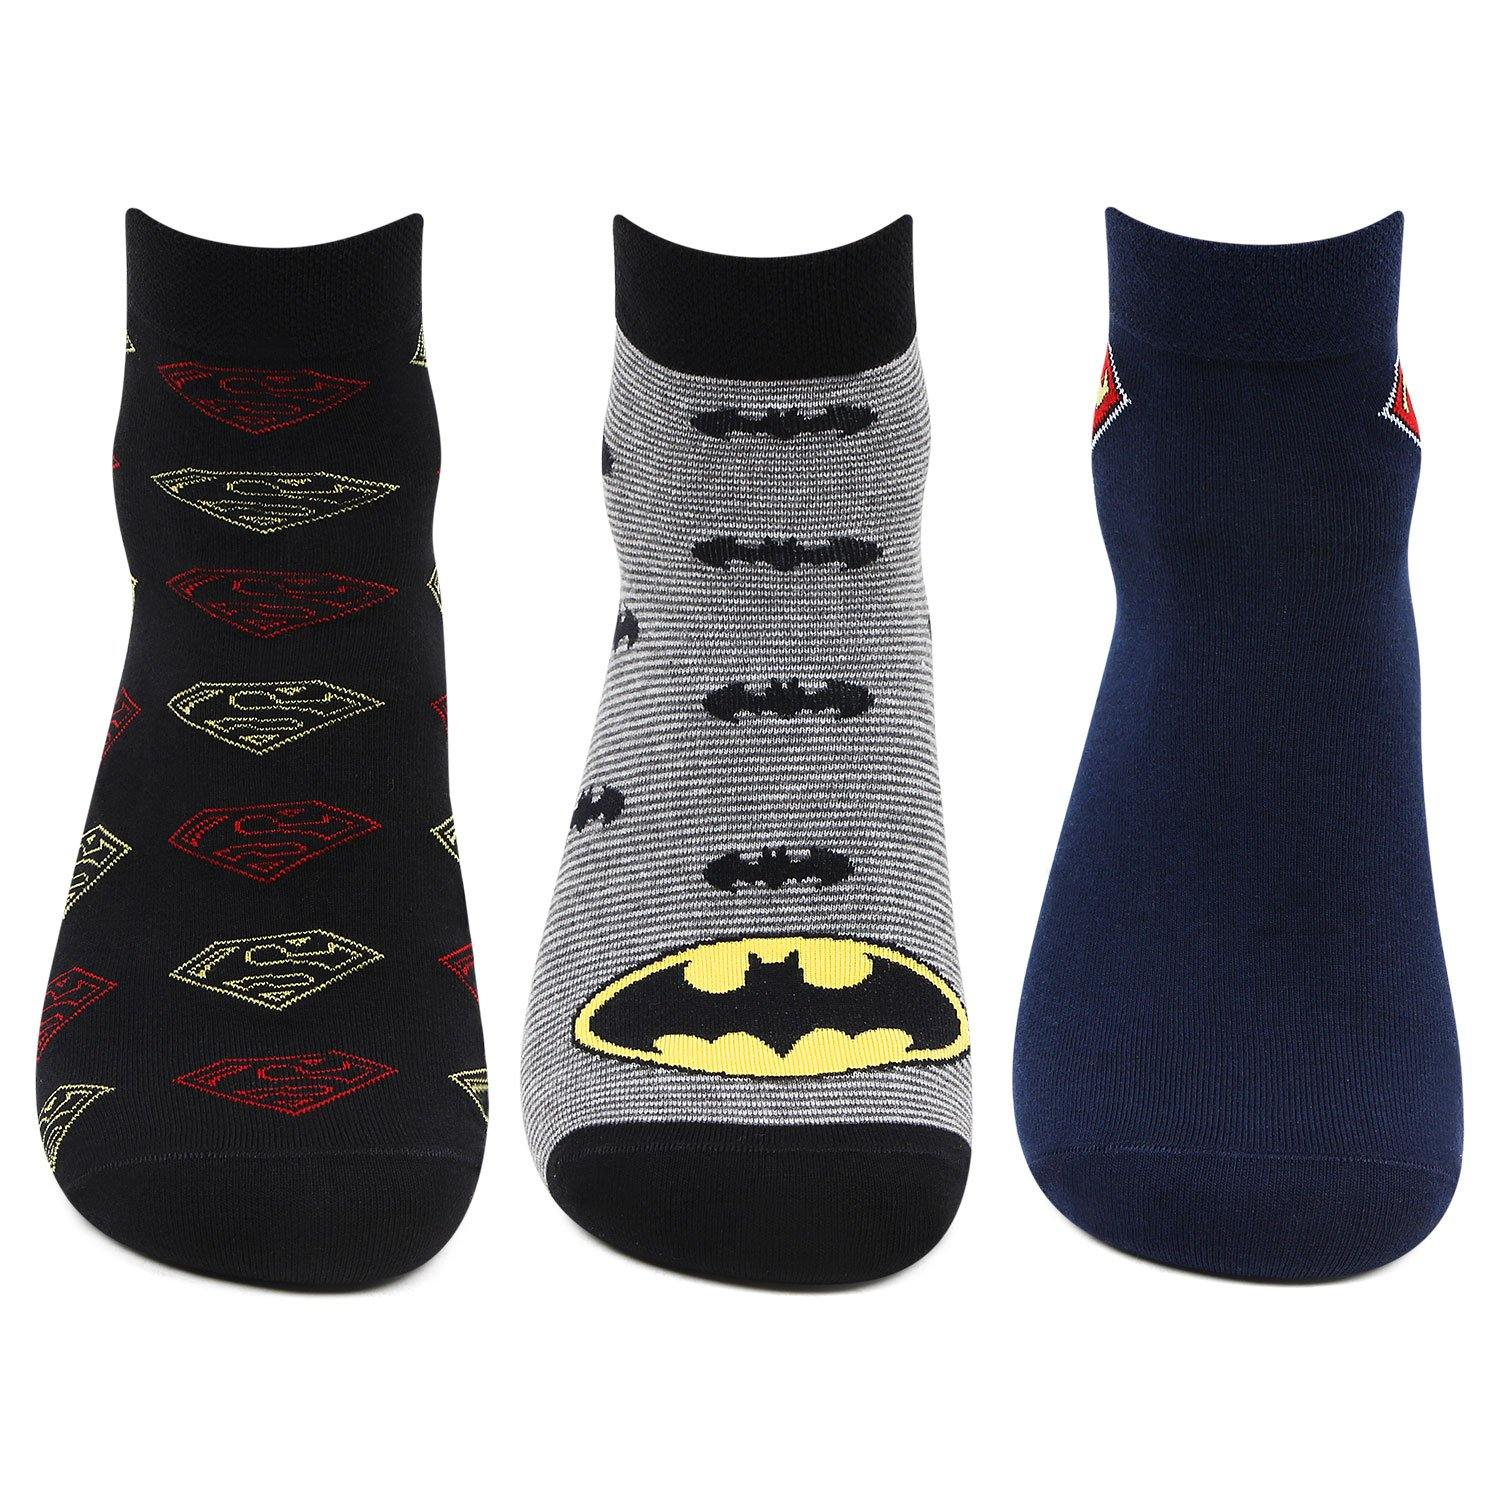 Superman and Batman Ankle Socks for Men- Pack of 3